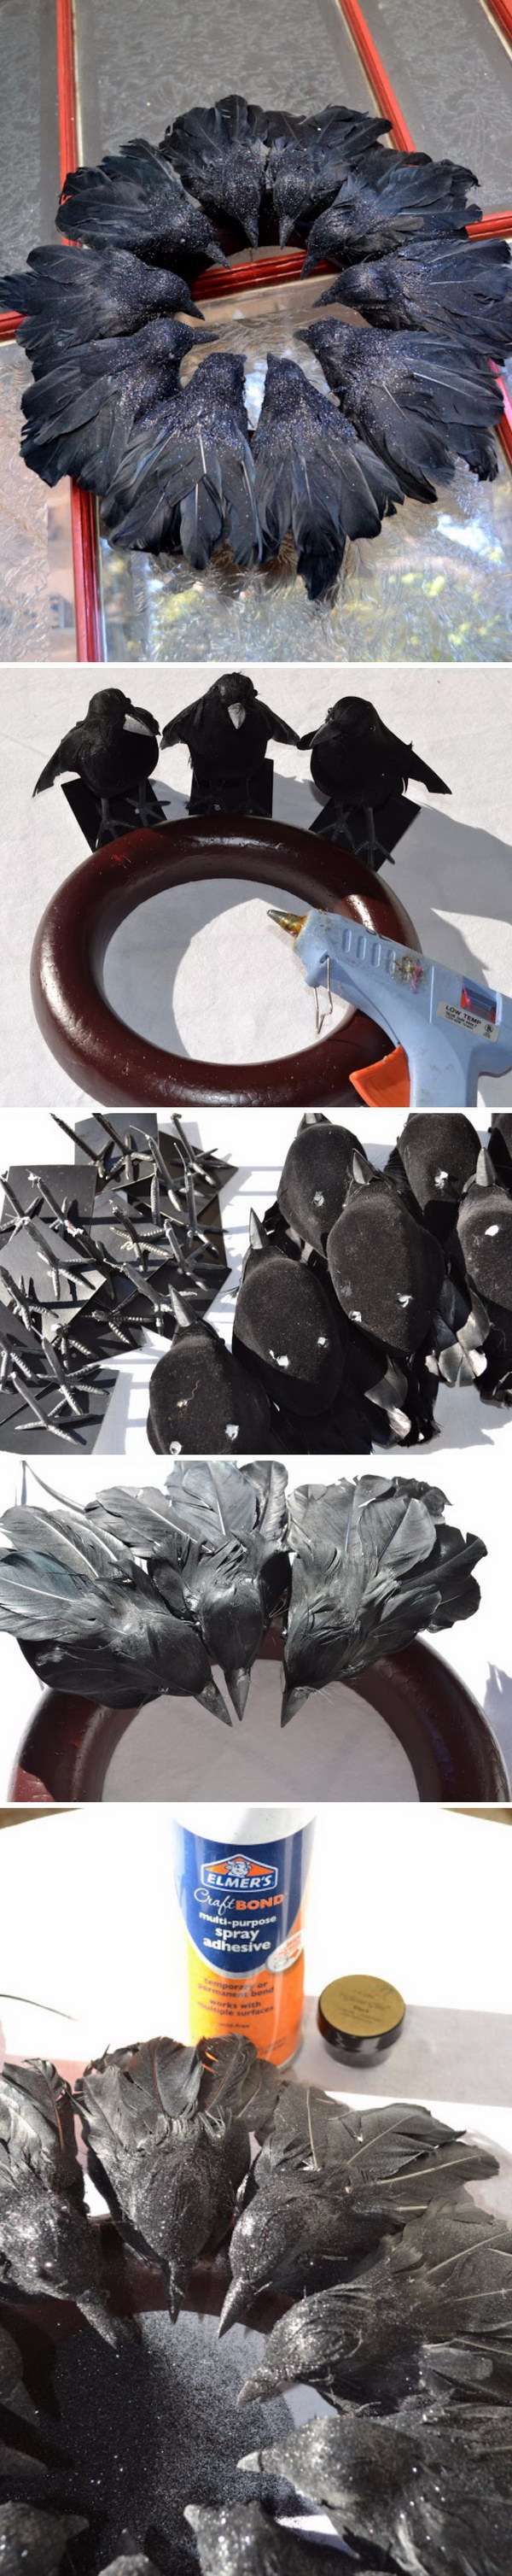 DIY Elegant Raven Wreath from Dollar Store Black Birds.